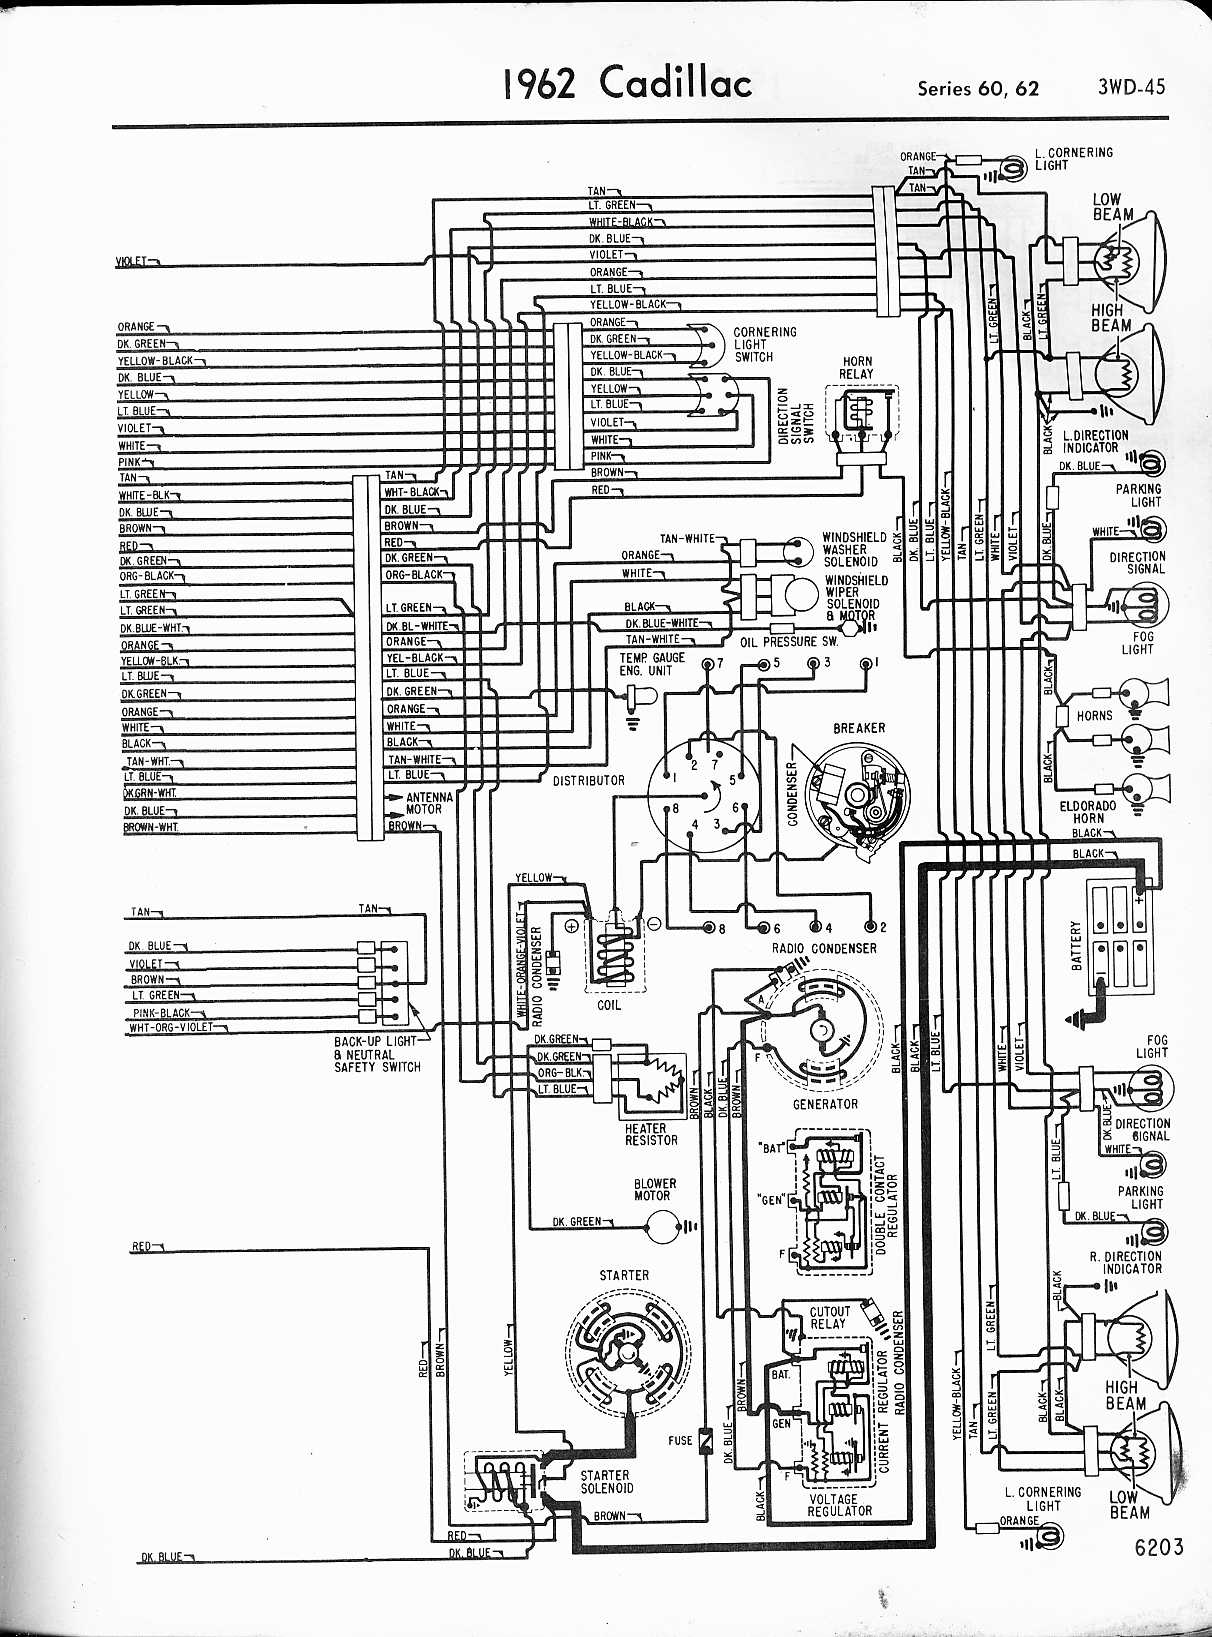 [SCHEMATICS_4JK]  Cadillac Wiring Diagrams: 1957-1965 | 1966 Cadillac Alternator Wiring Diagram |  | The Old Car Manual Project